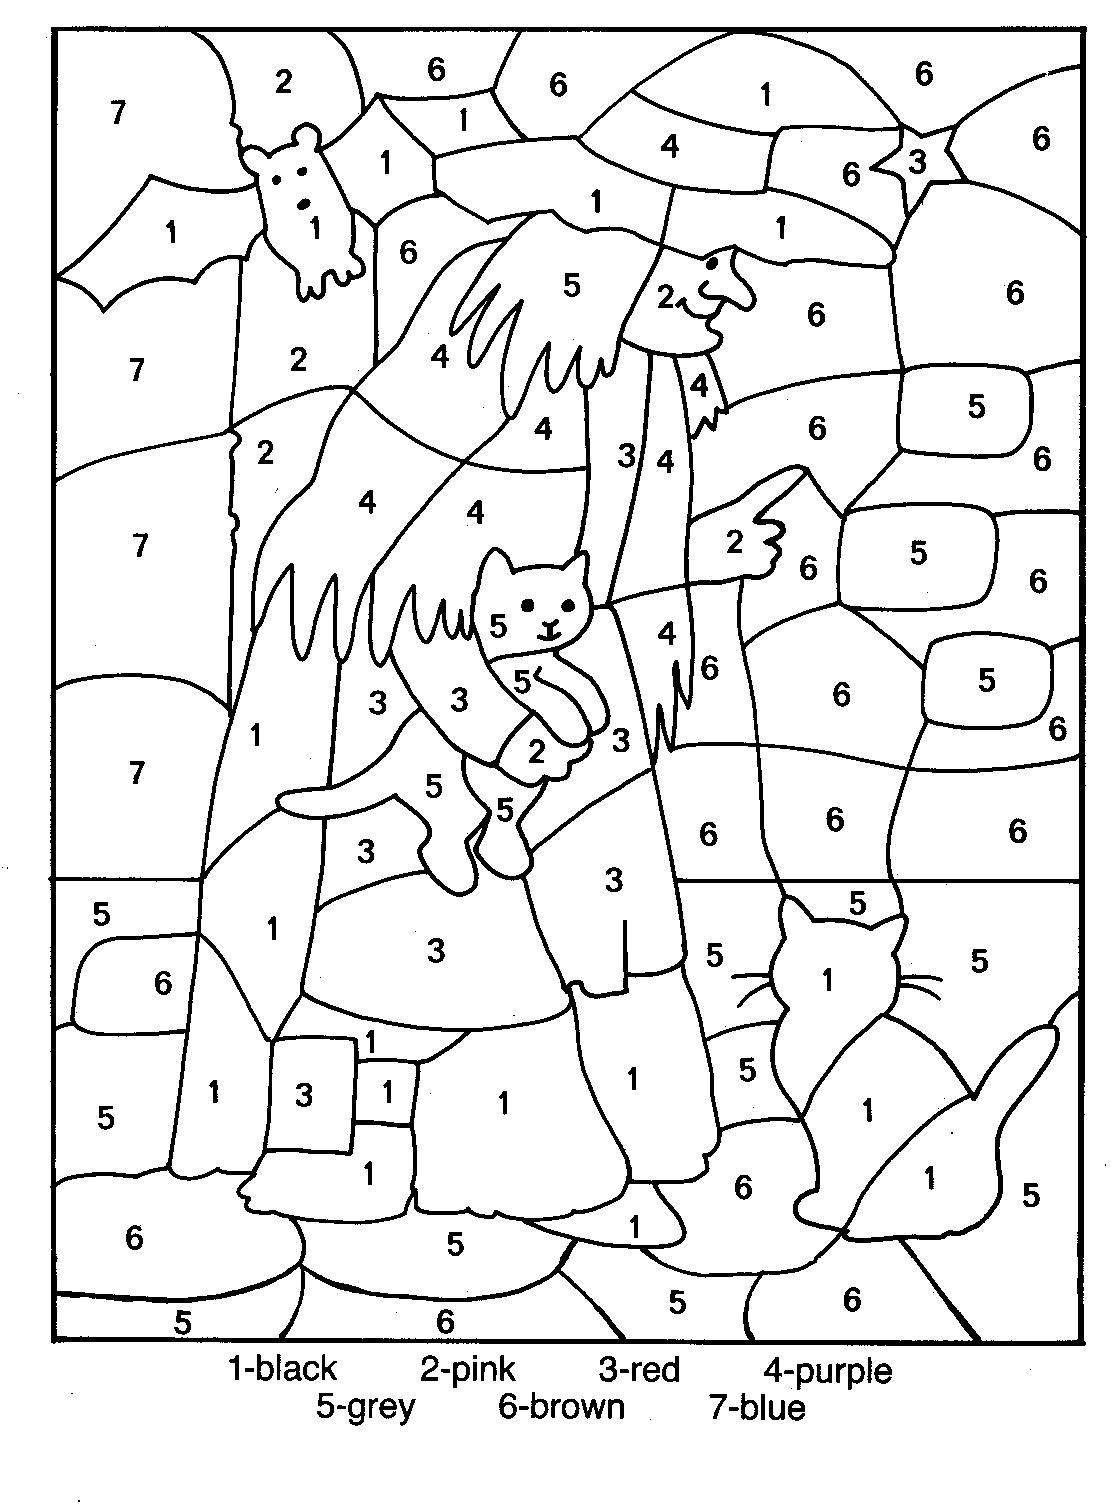 Printable coloring pages esl - Crafts Actvities And Worksheets For Preschool Toddler And Kindergarten Free Printables And Activity Pages For Free Lots Of Worksheets And Coloring Pages